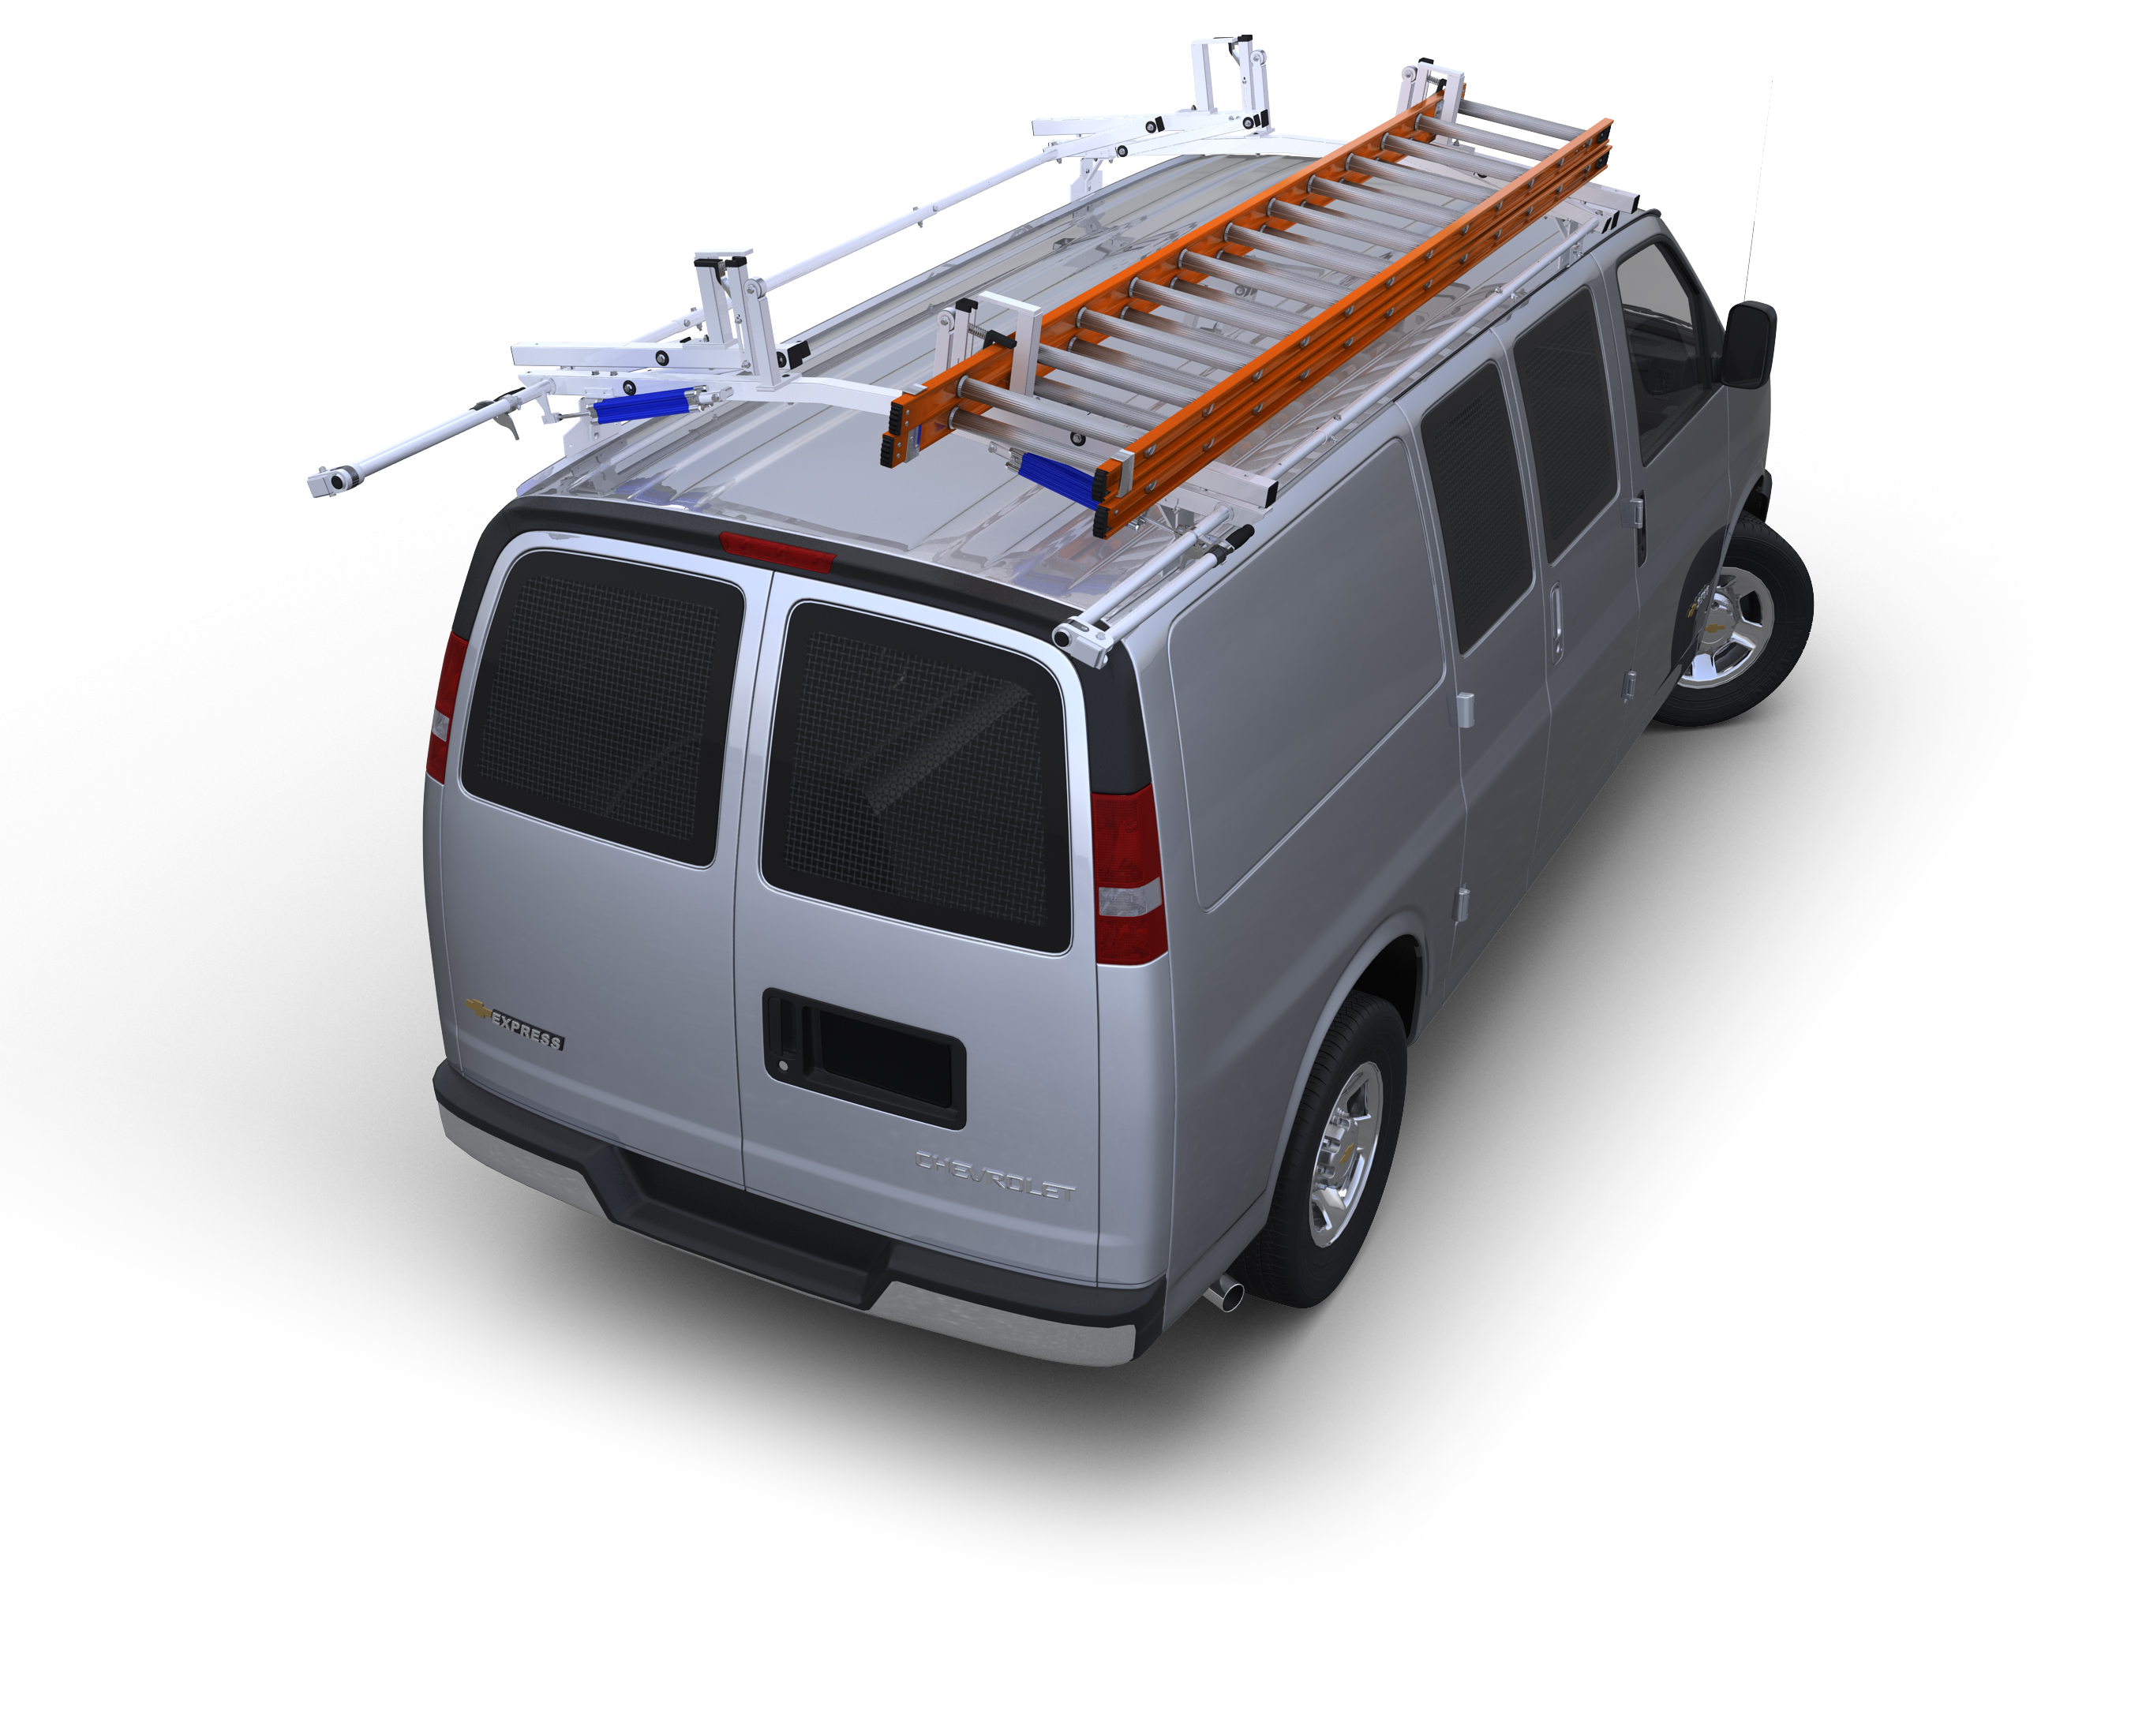 Chevy City Express Plumbing Van Package, Steel Shelving - SAVE $100!